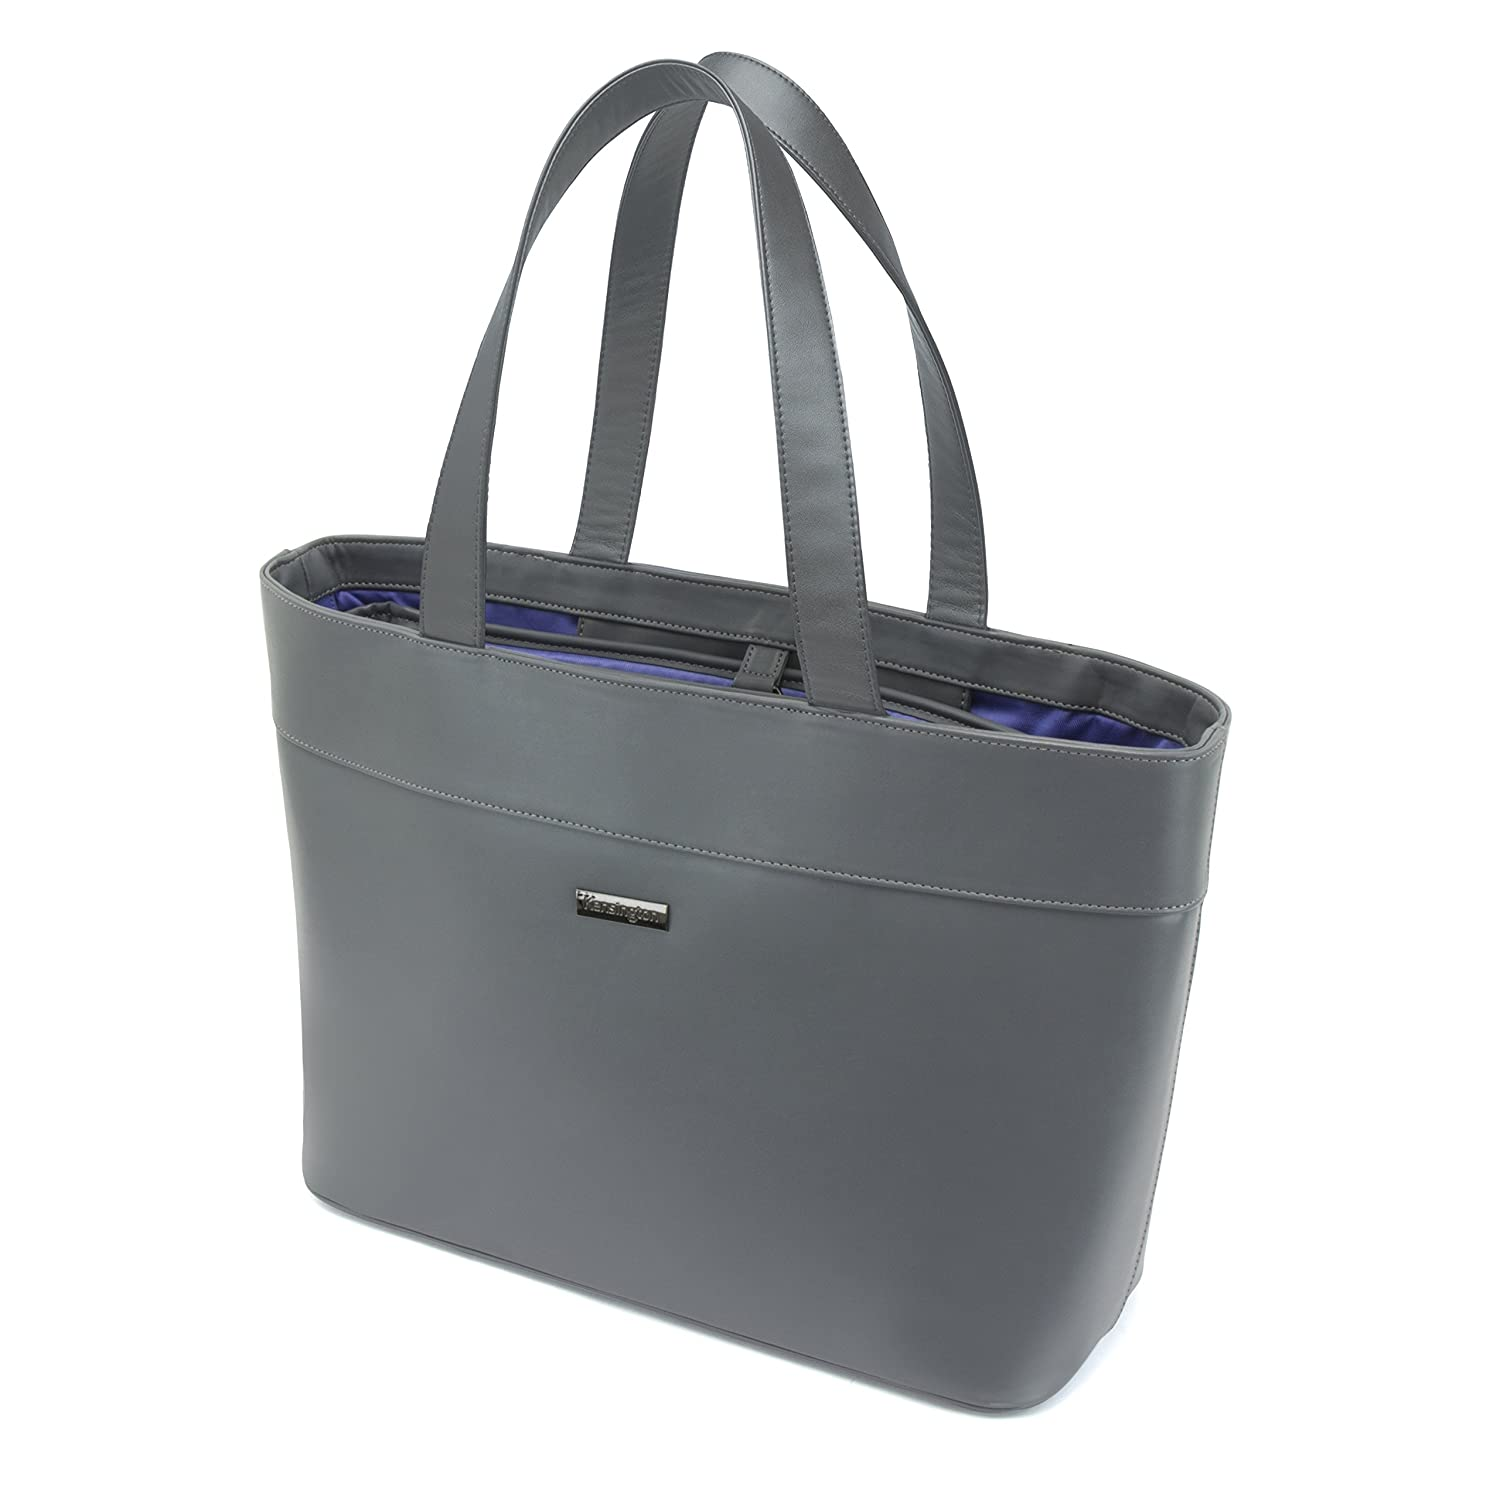 Kensington K62615WW LM650 Fashionable Laptop and Tablet Tote, 15-Inch, Grey with Blue Interior